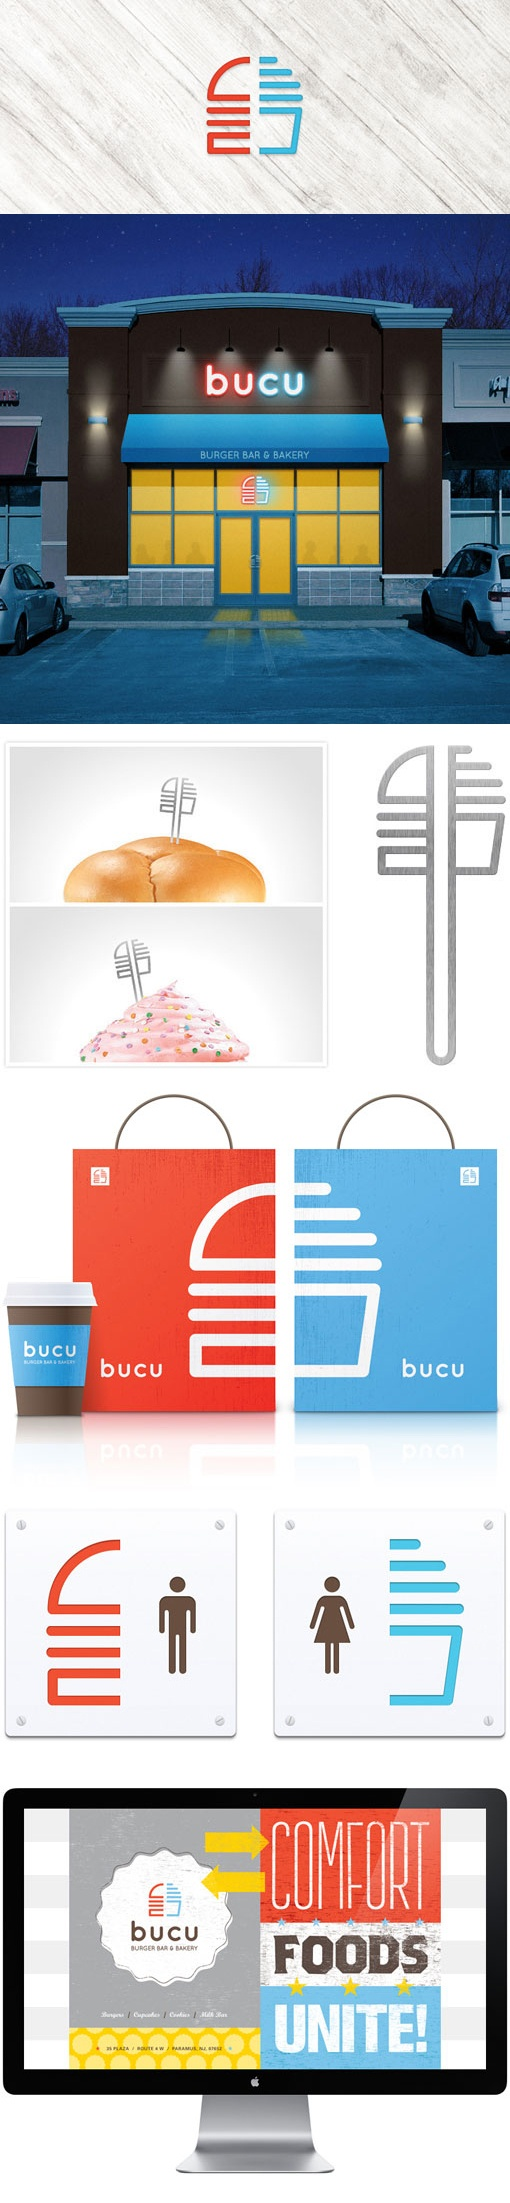 BUCU burger and cup­cake restaurant. branding. identity design. graphic design. design by Stebbings Partners